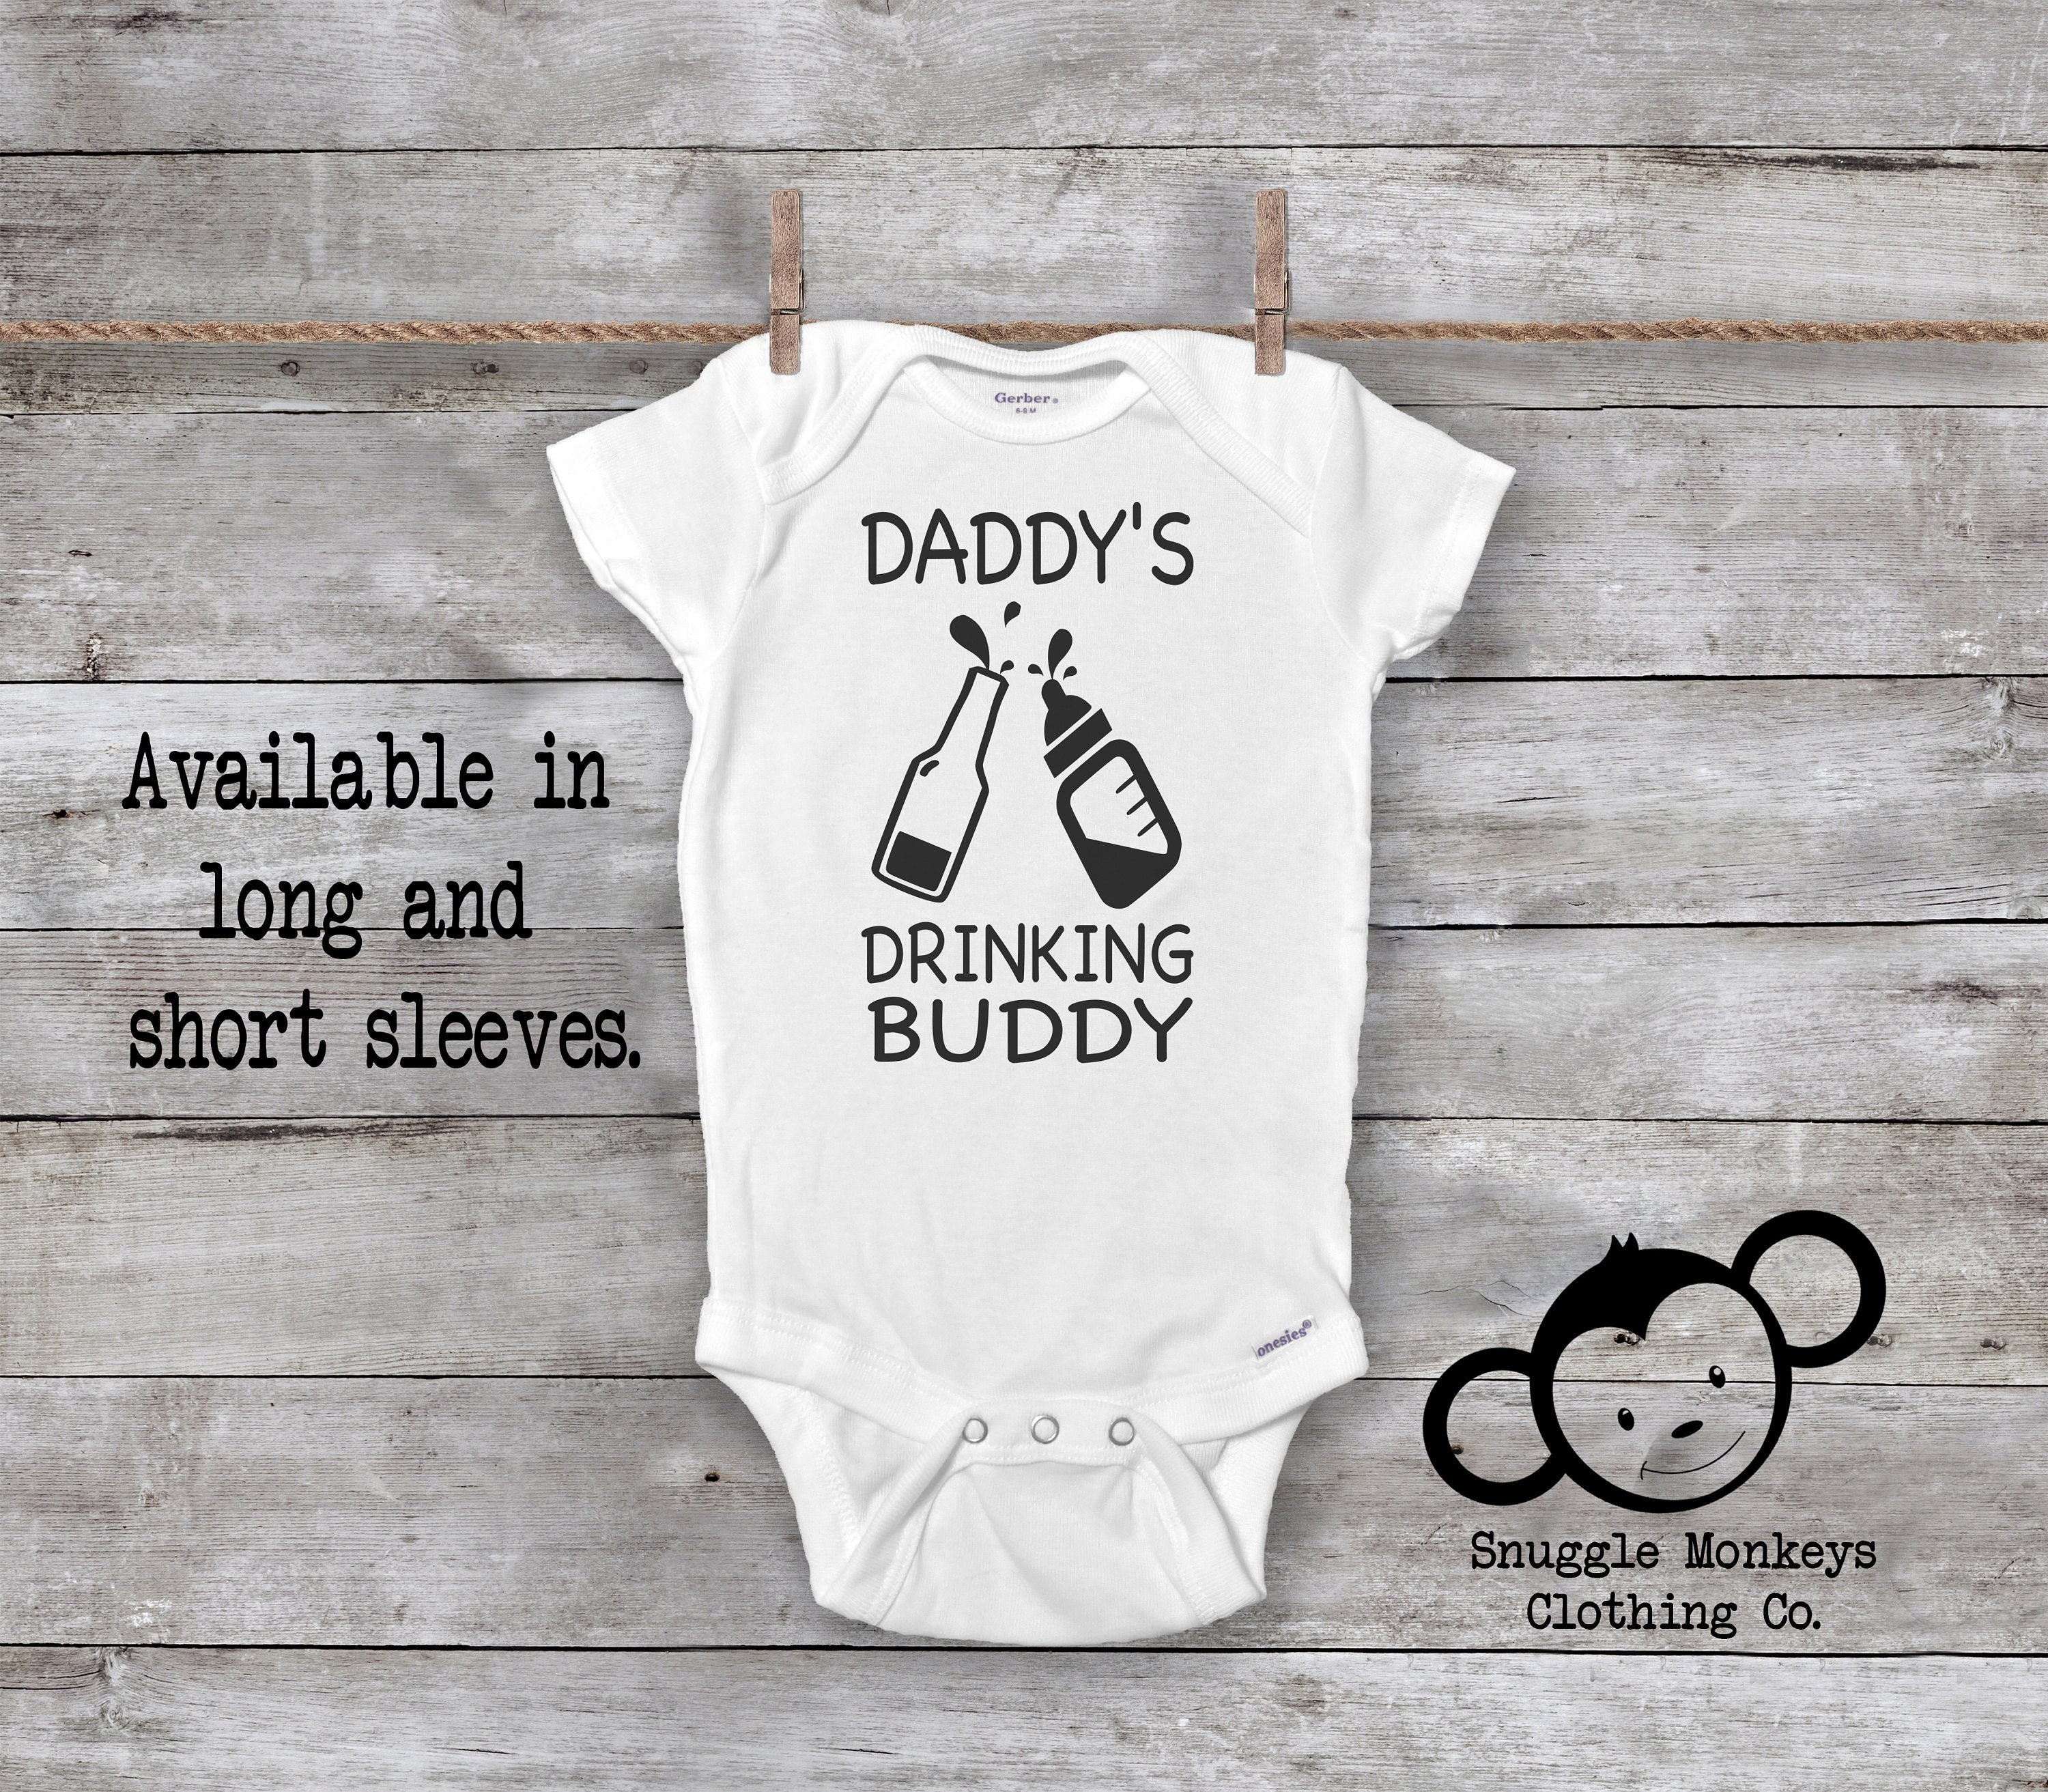 cf331b9f6 Drinking Buddy Onesie®, Funny Baby Onesie®, I Love Daddy Onesie®, Beer  Onesie®, Daddy Baby Clothes, Baby Shower Gift, Cute Baby Clothes